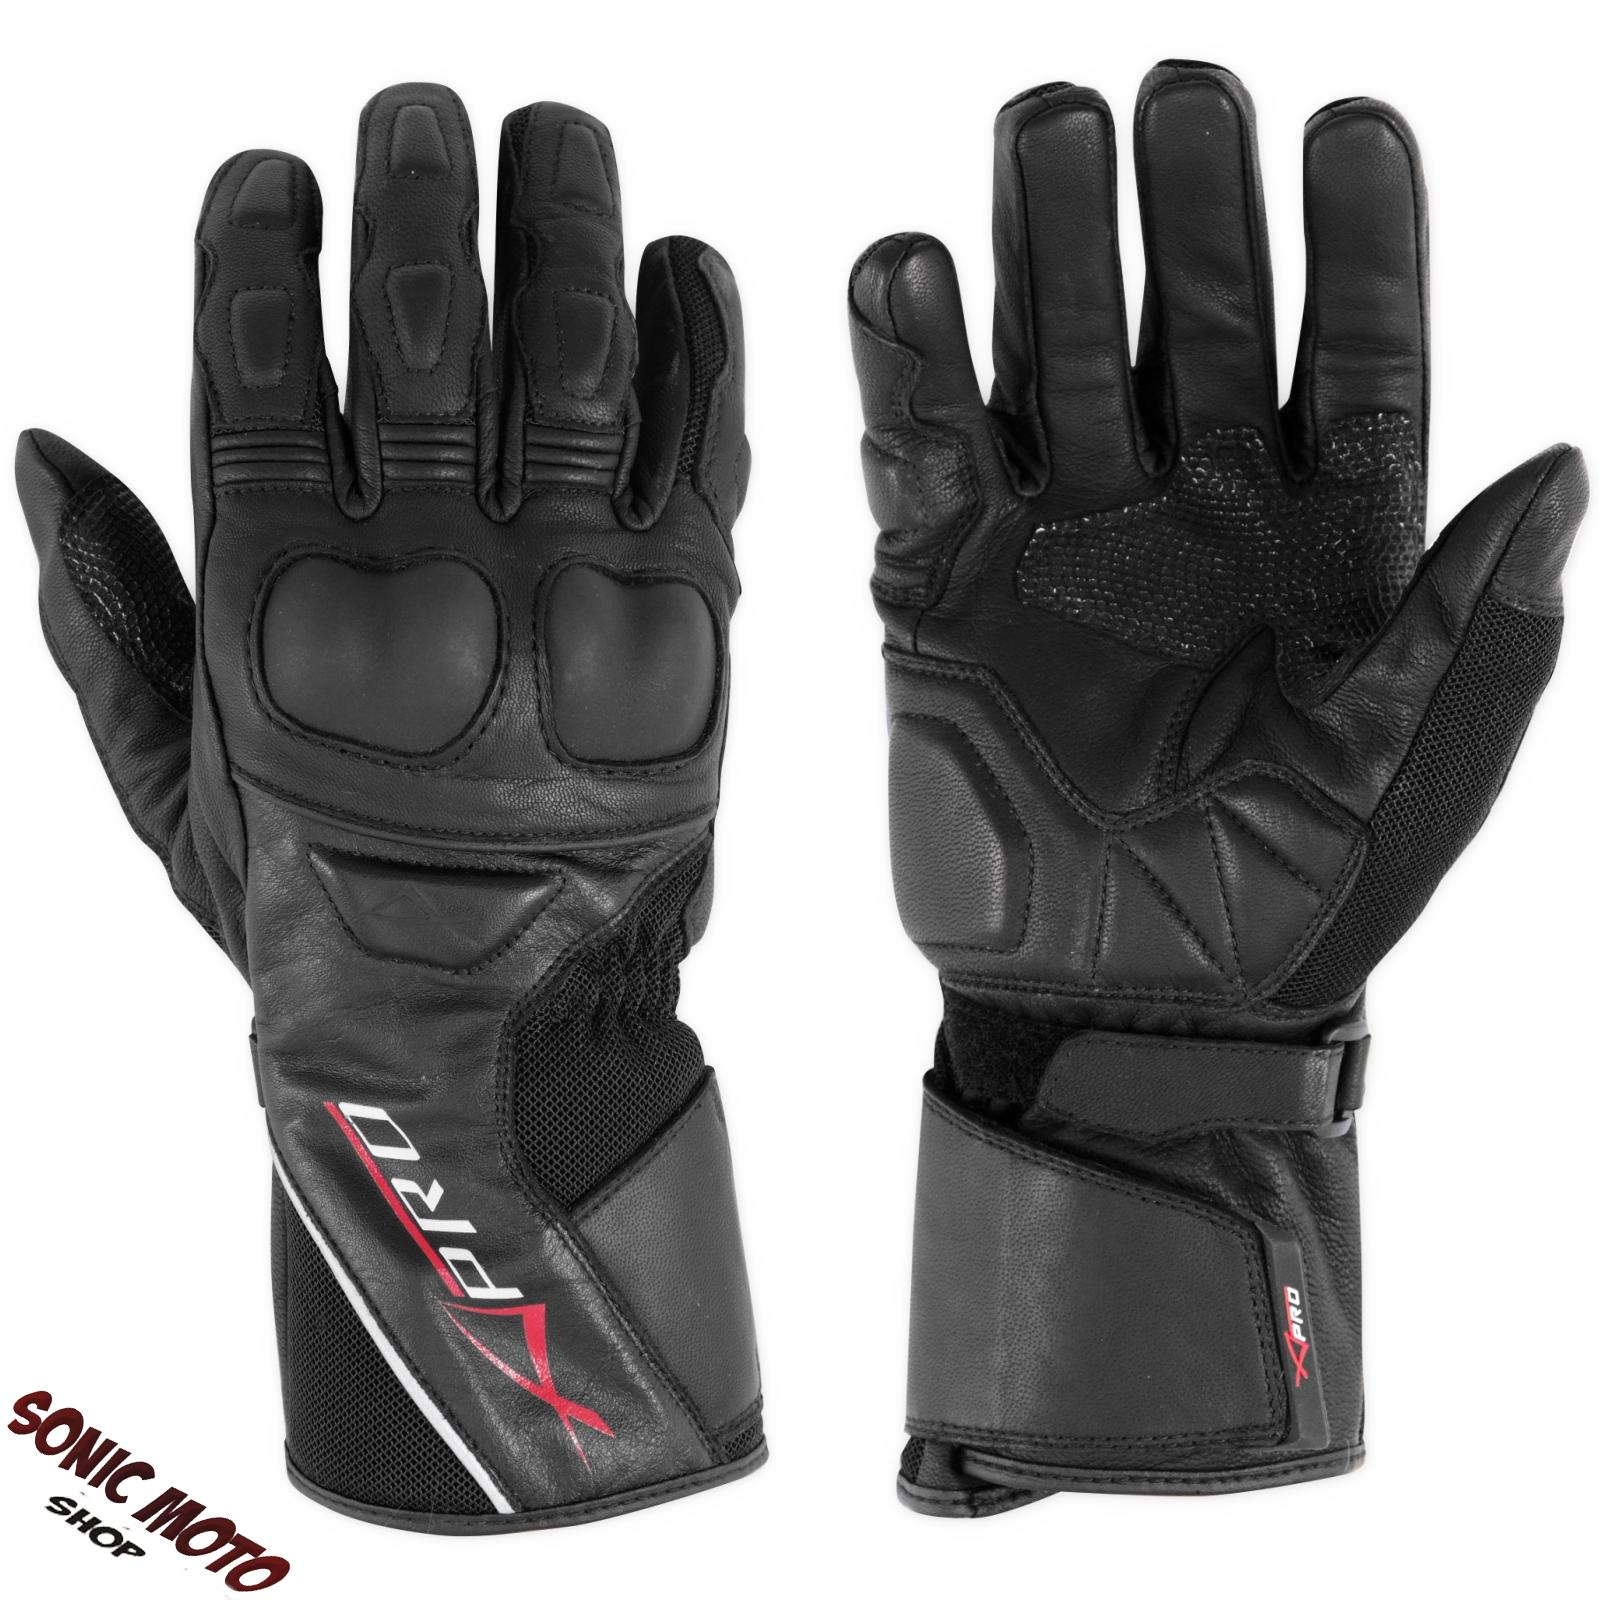 Moto-Guantes-Piel-Protectores-Nudillos-Maxi-Scooter-Sport-Touring